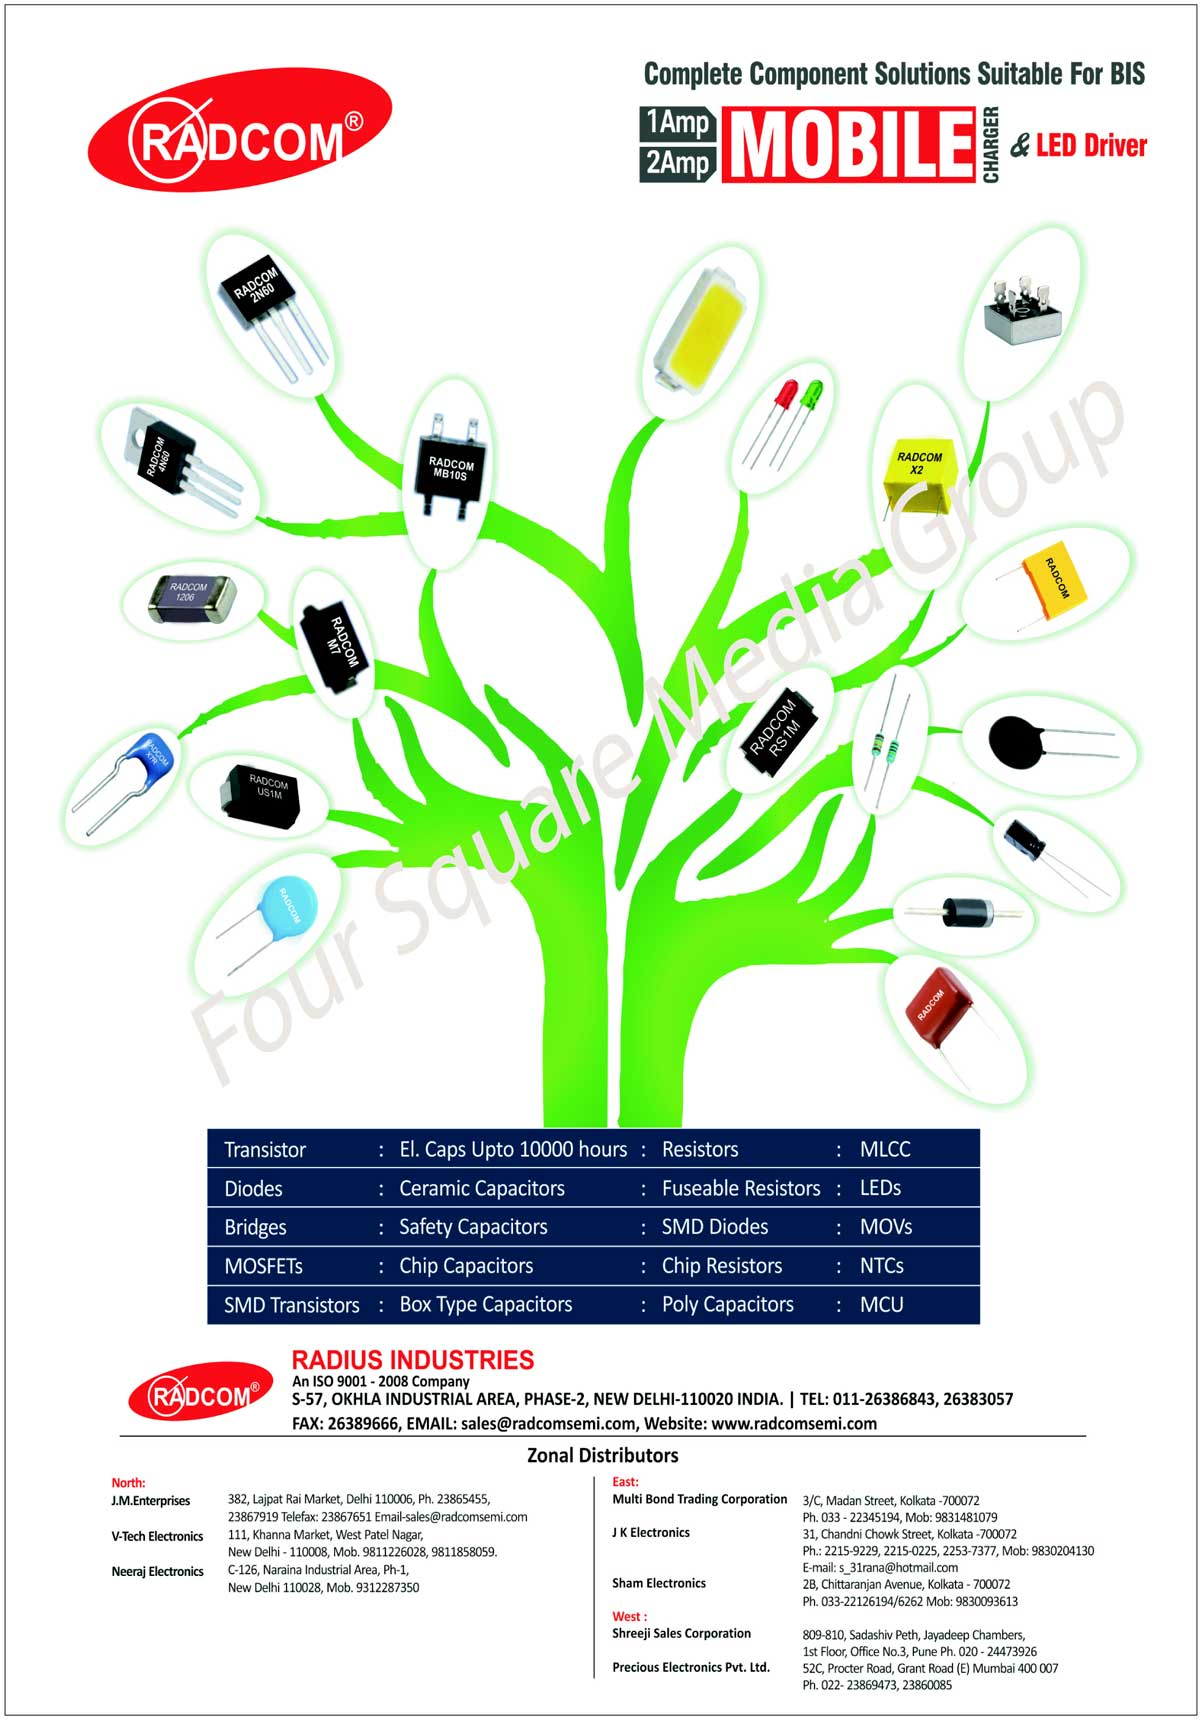 Led Drivers Components, Electronic Components, Capacitors, Diodes, LEDs, Transistors, Rectifiers, Bridges, Schottky, DIACS, Resistors, MOV, NTCs, Integrated Circuits, MOSFETs, SMD Transistors, Ceramic Capacitors, Safety Capacitors, Chip Capacitors, Box Type Capacitors, Fuseable Resistors, SMD Diodes, Chip Resistors, Poly Capacitors, MLCC, MCU, Electrolytic Capacitors, Public Address System Component Solutions, Power Transistors, Low Noise Audio Amplifier Transistors, Output Transistors, Integrated Circuits, Active Components, Passive Components, Mobile Charger Components